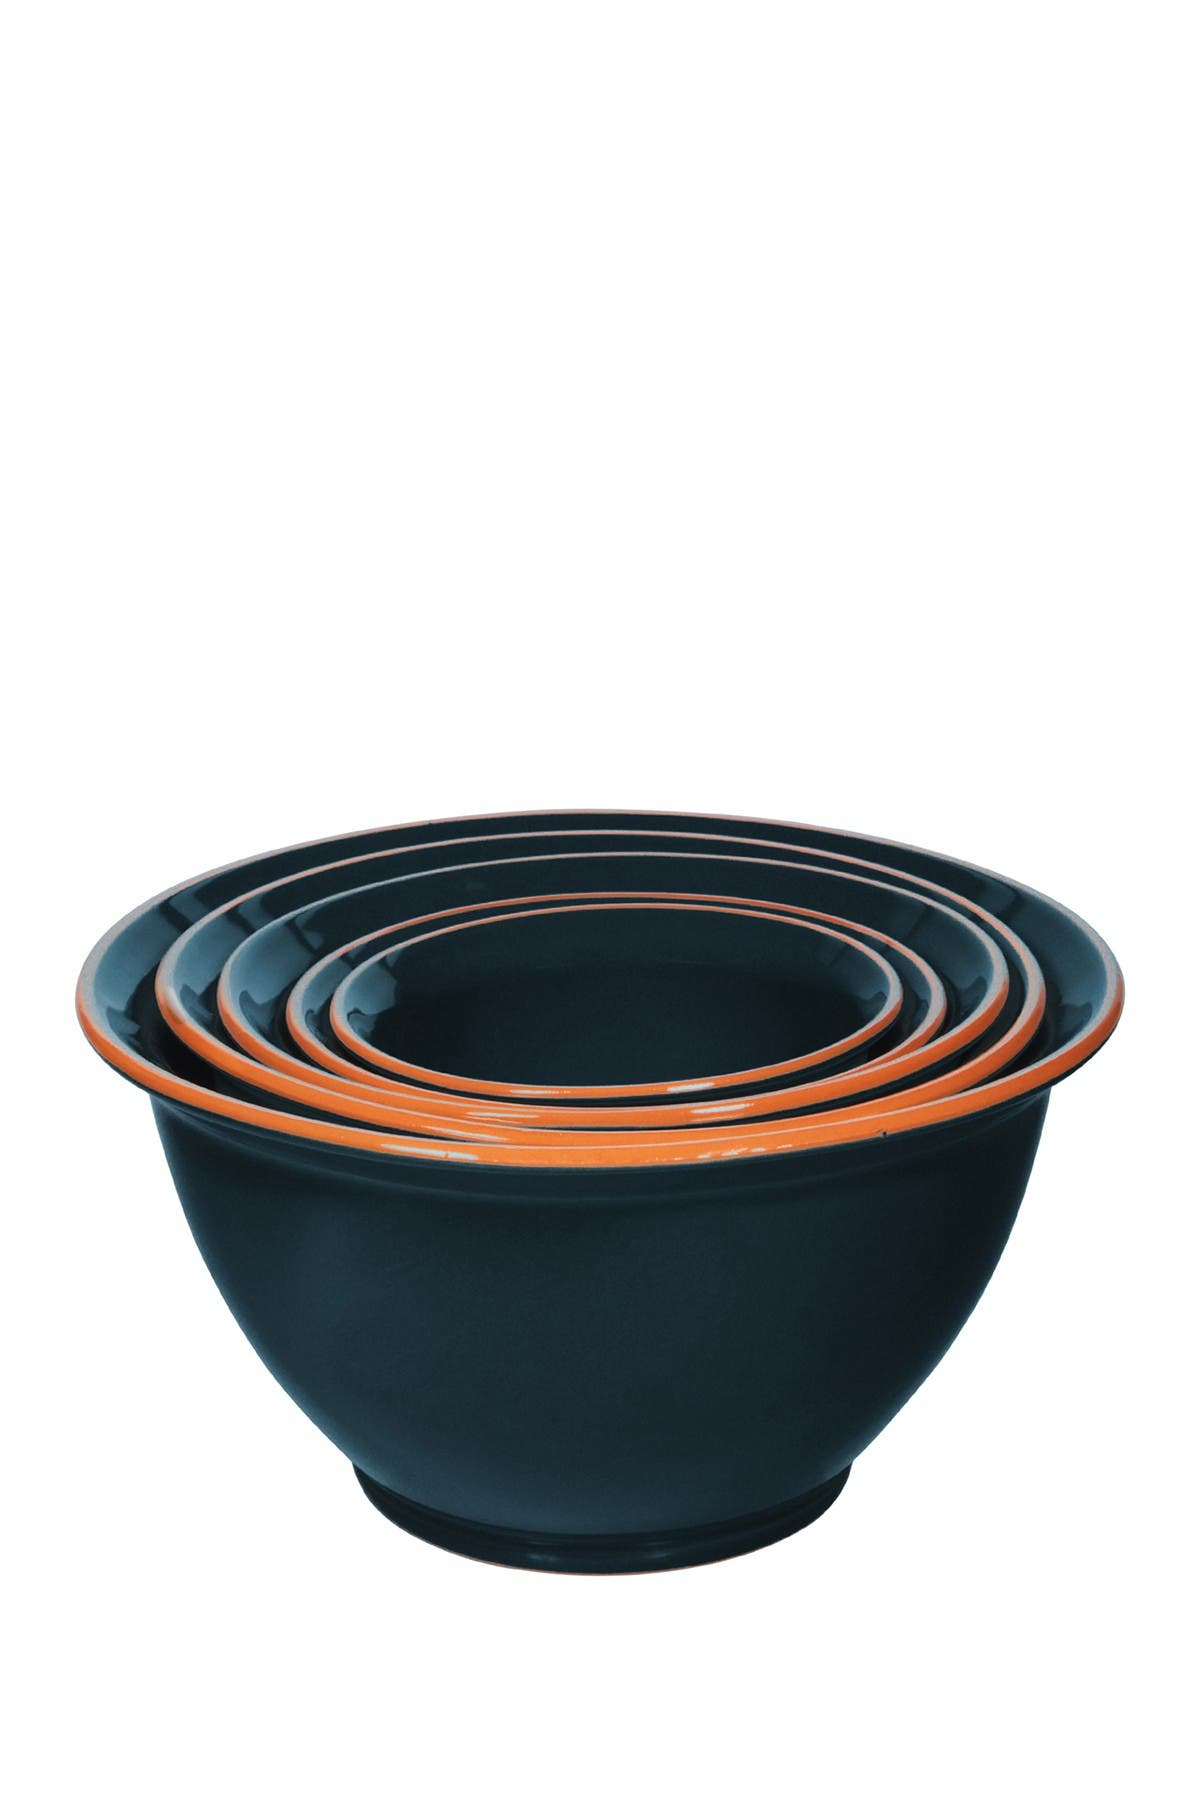 Image of Home Essentials and Beyond Navy Nested Mixing Bowls - Set of 5